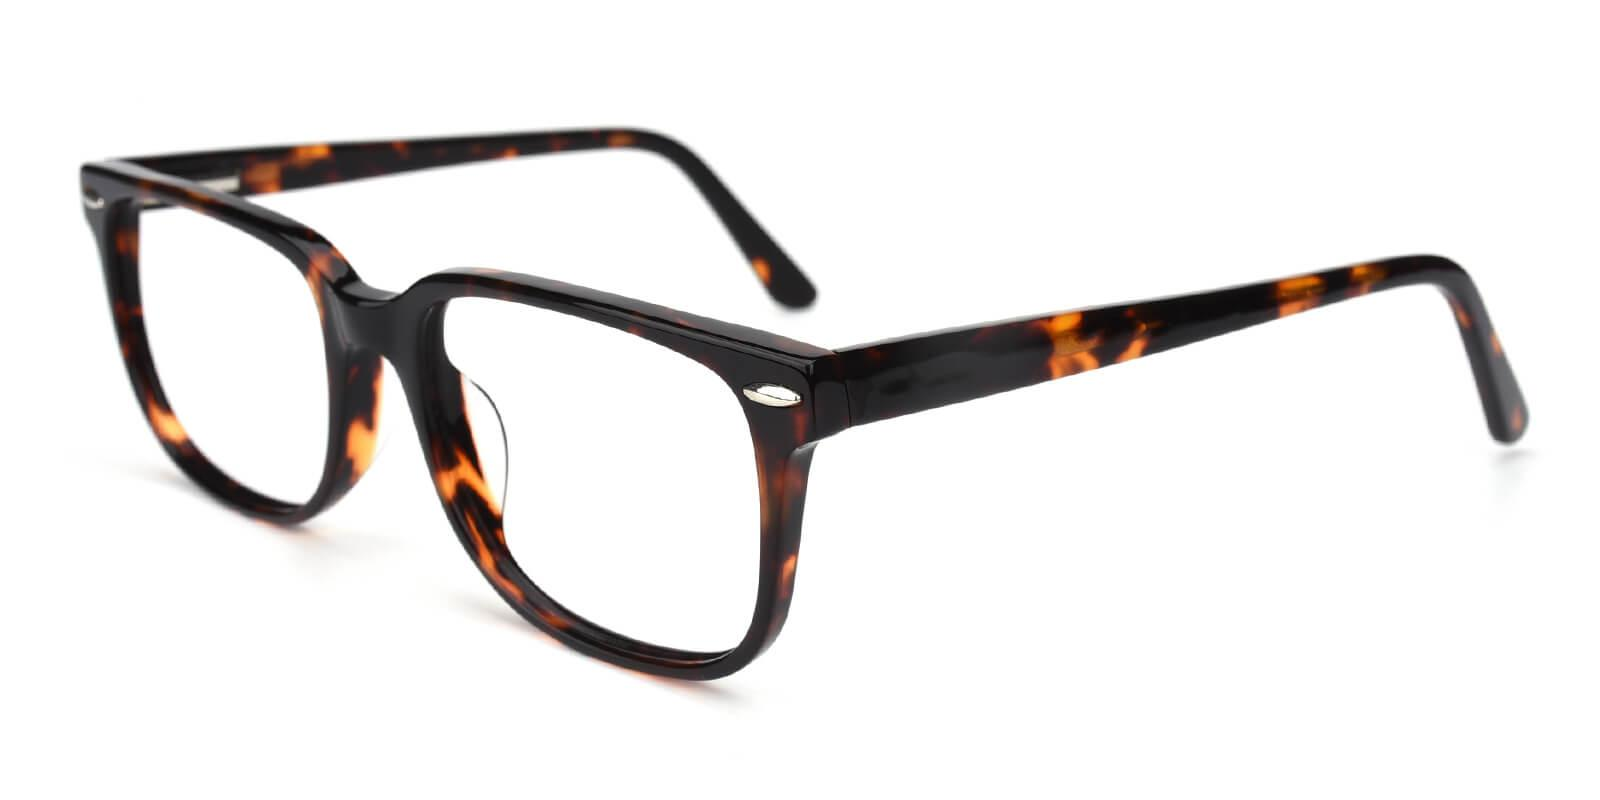 Tempiry-Pattern-Rectangle-Acetate-Eyeglasses-additional1